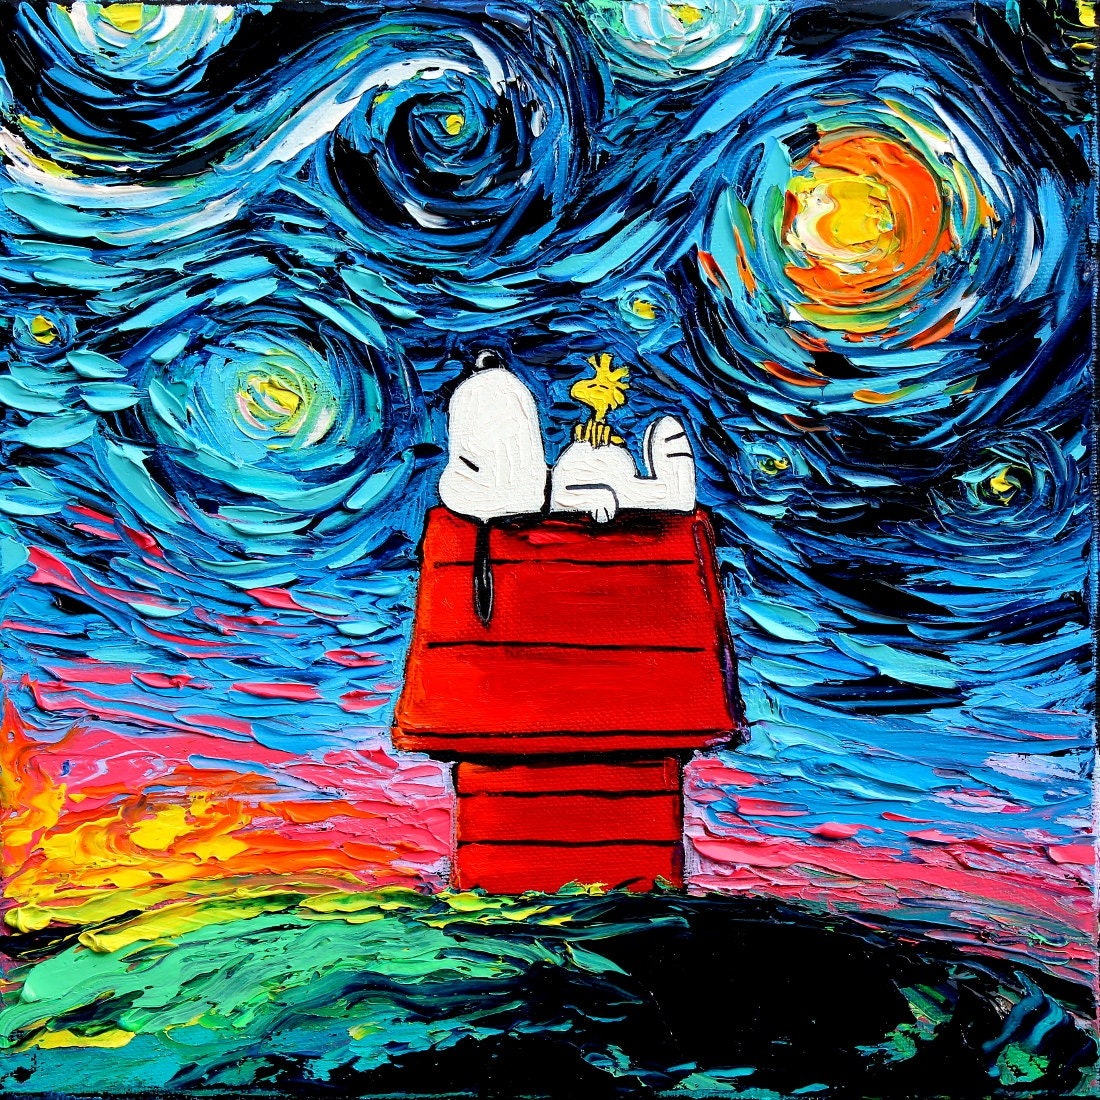 Snoopy art peanuts cartoon starry night print van gogh never - Pintores zaragoza ...